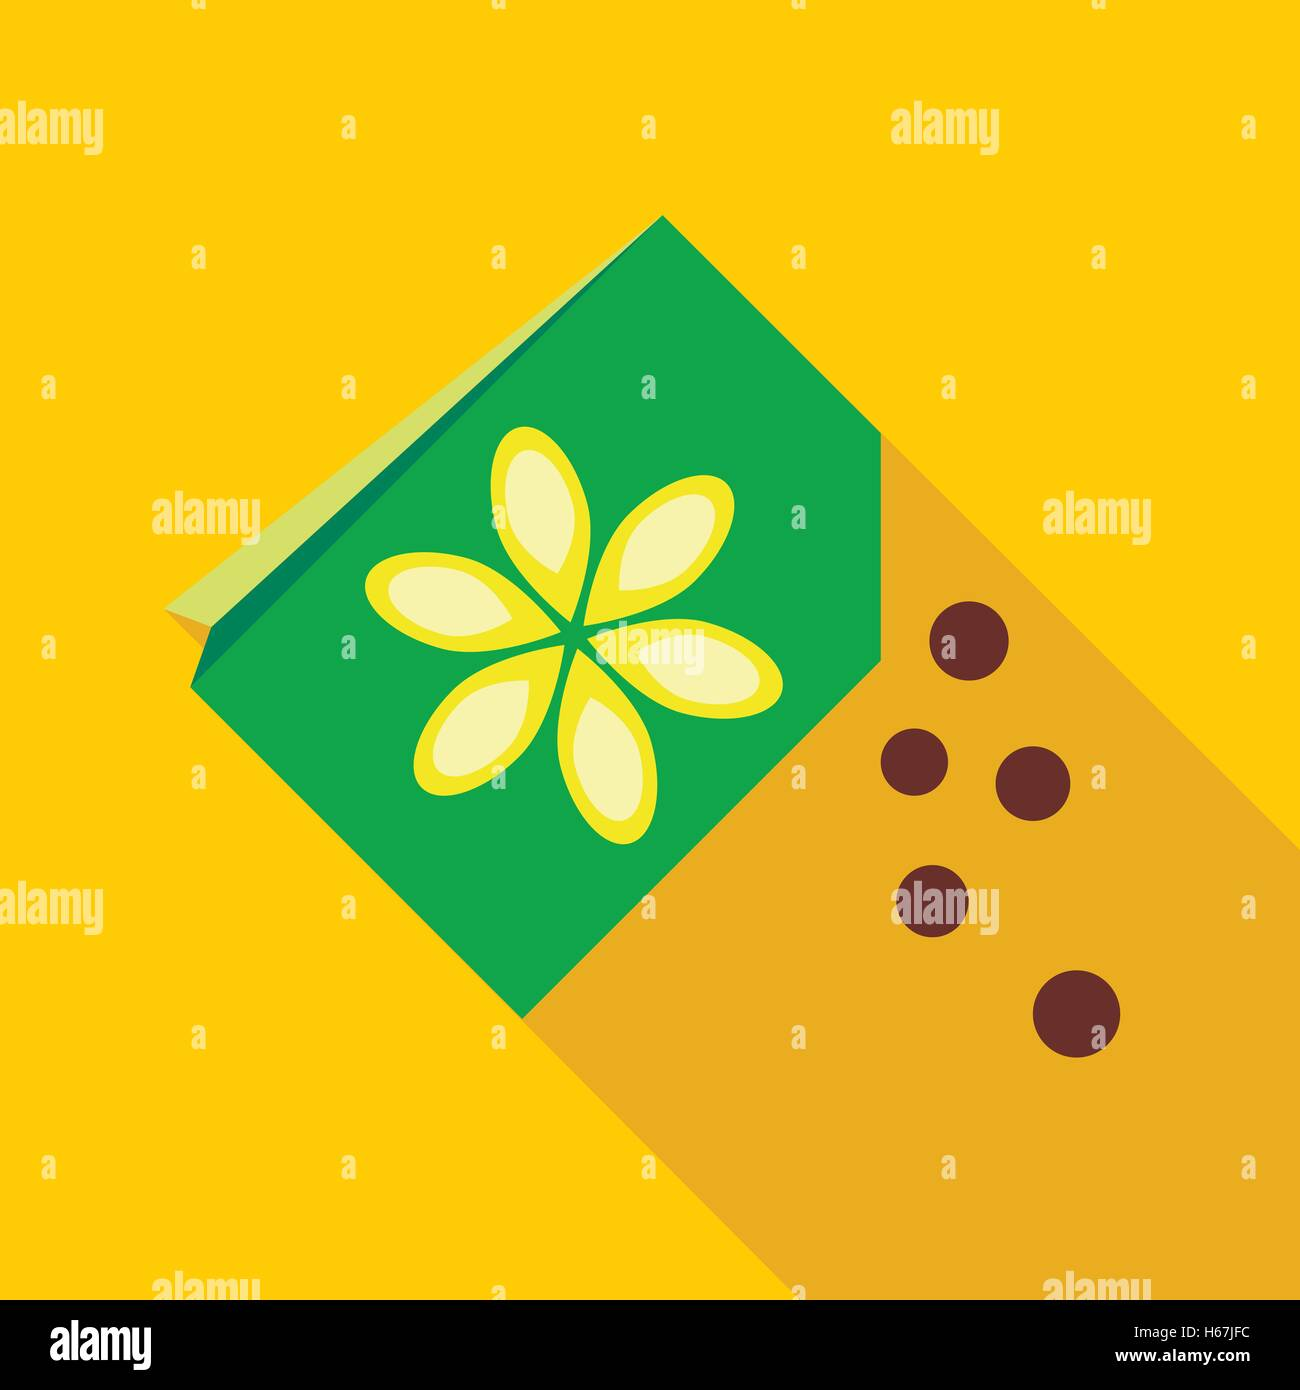 Paper Bag With Flower Seeds Icon Stock Vector Art Illustration